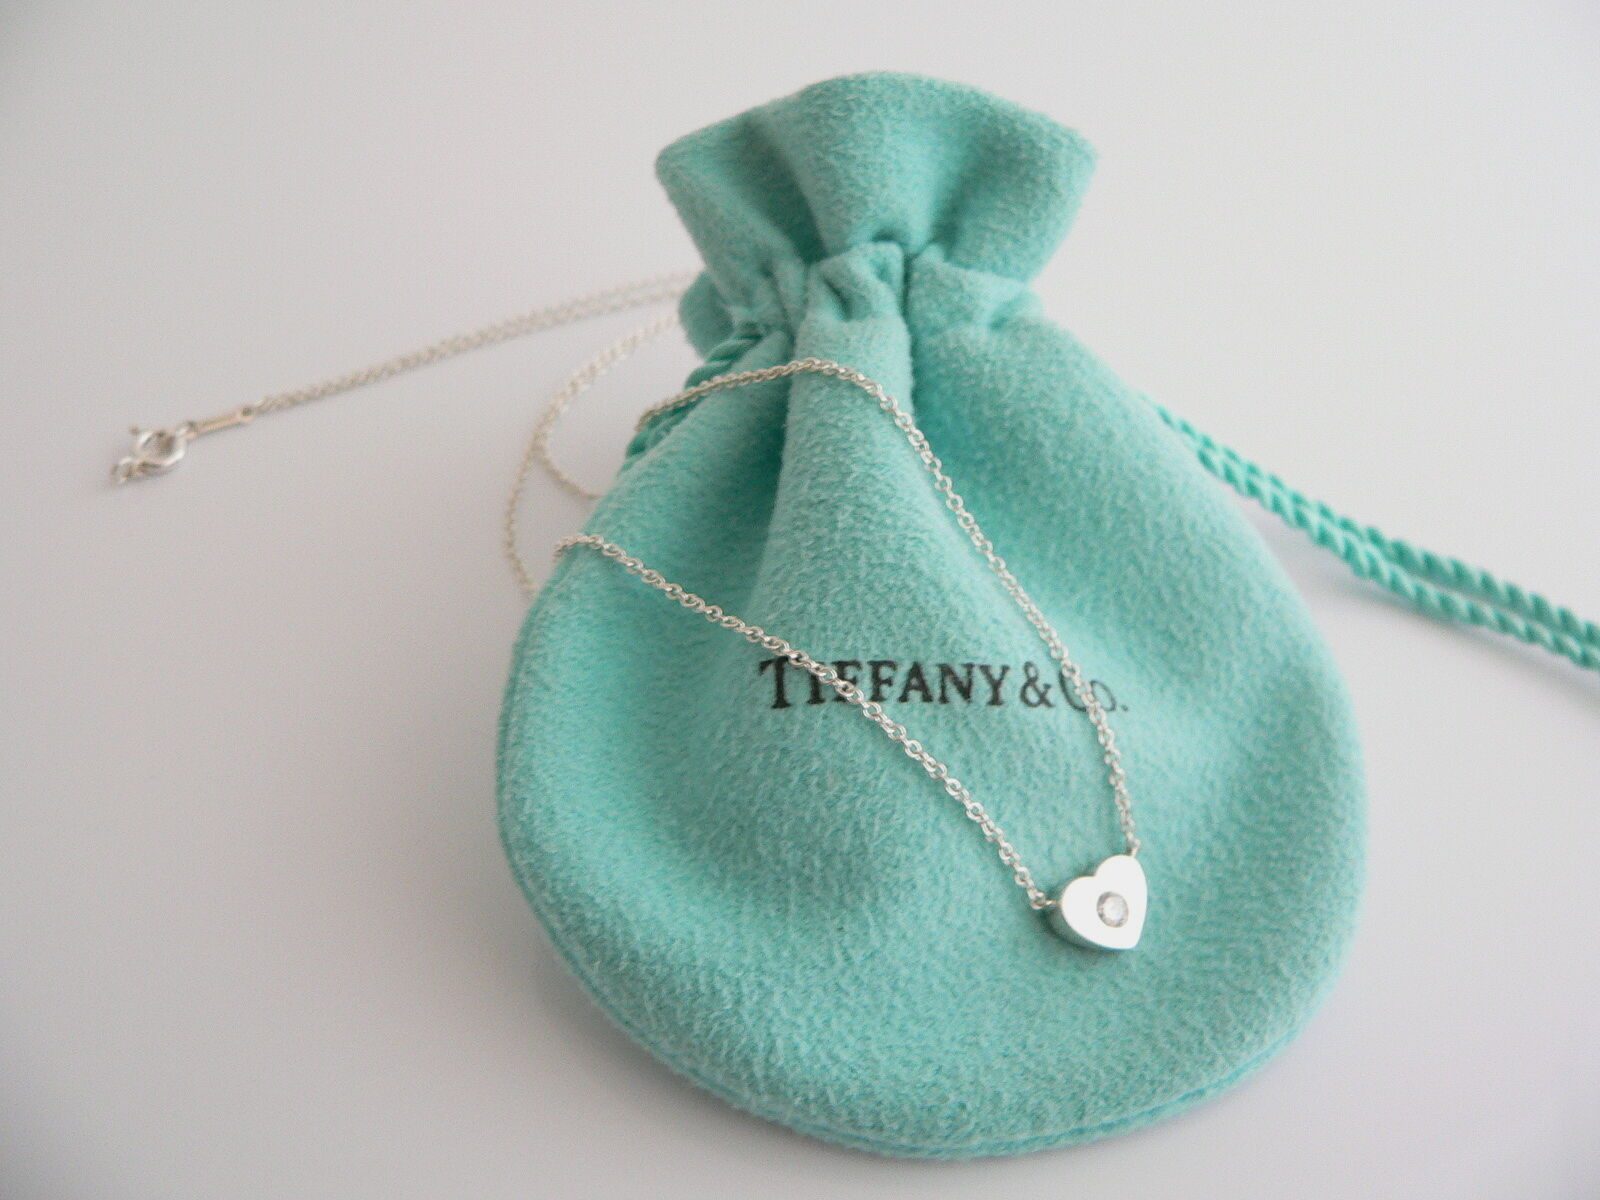 Tiffany & Co Silver Diamond Heart Necklace Pendant Charm Sparkly Gift Picasso